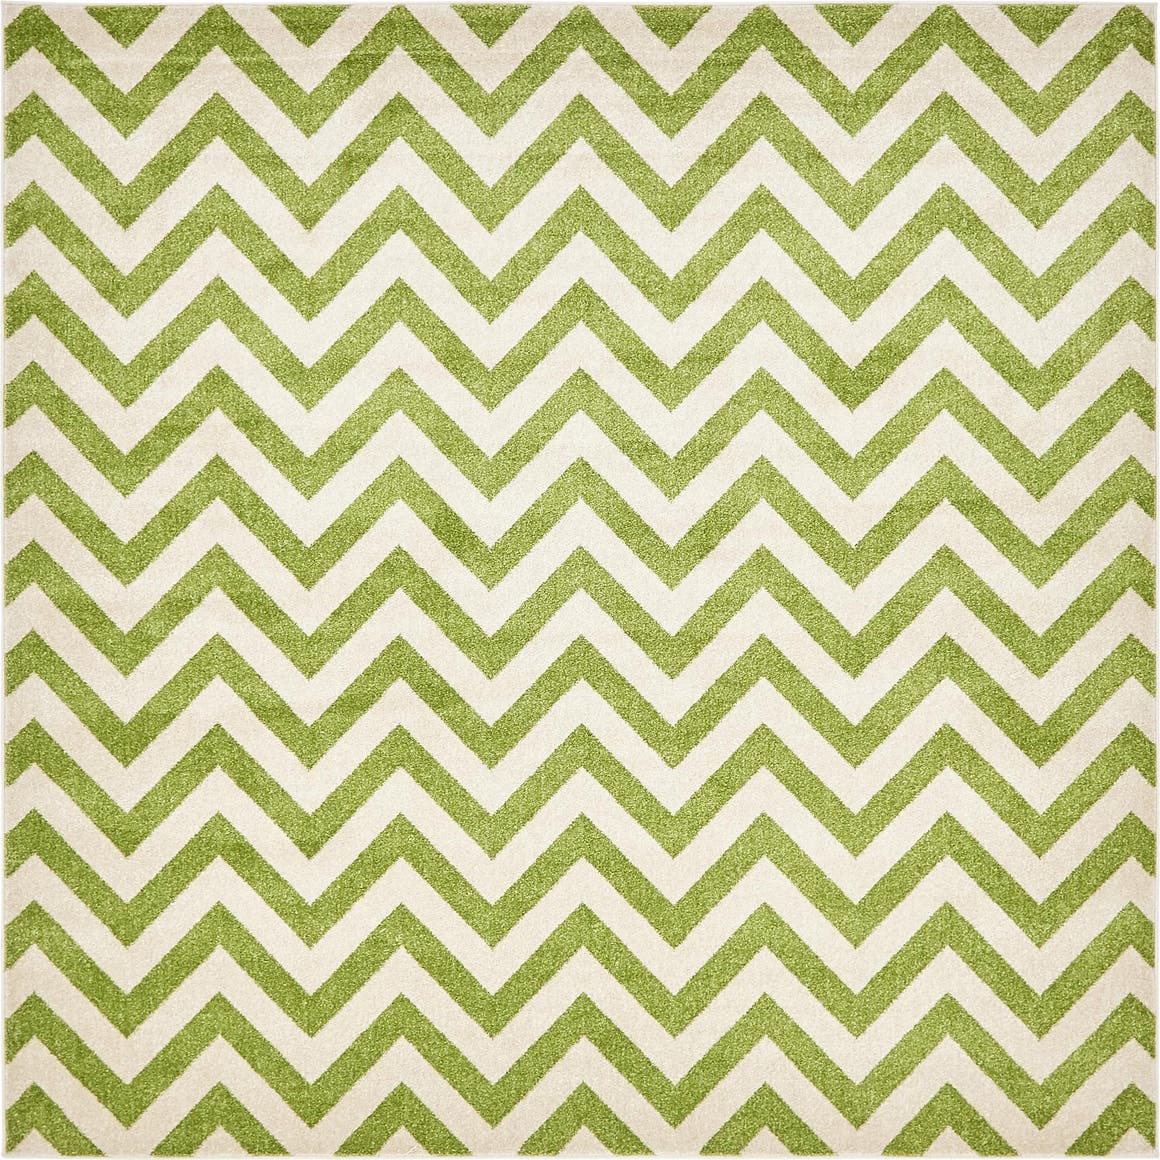 8' x 8' Chevron Square Rug main image